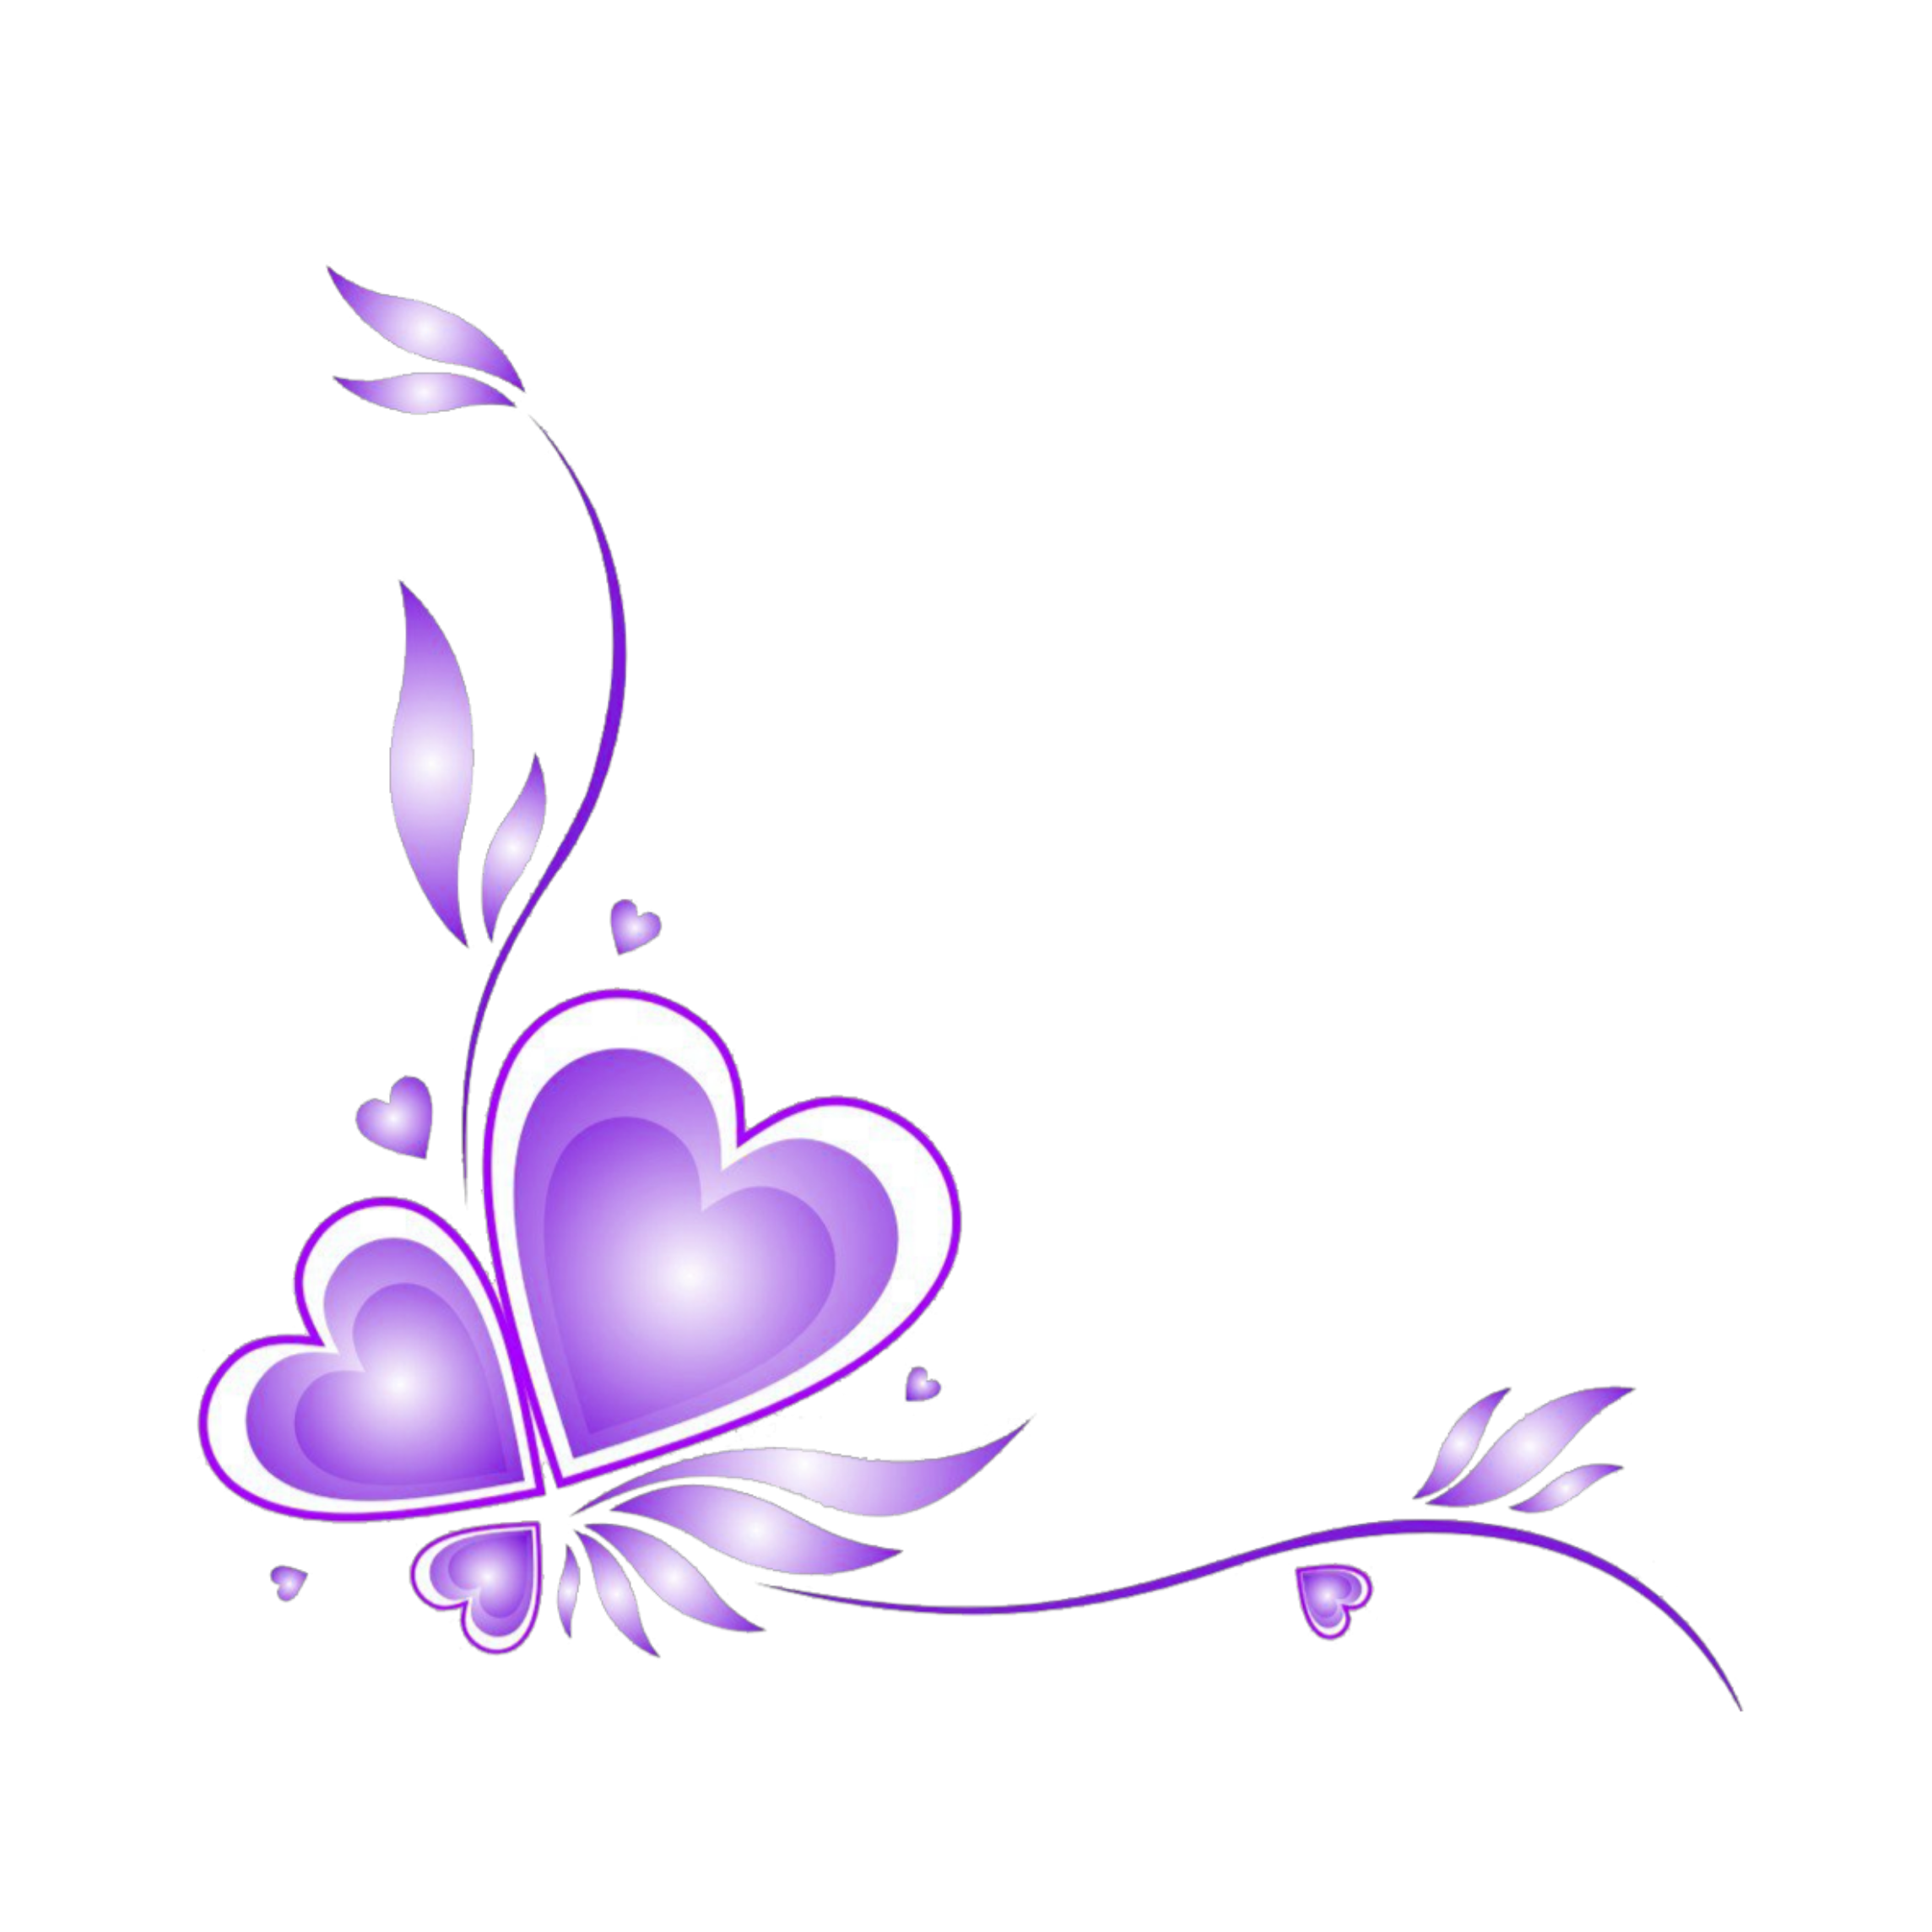 Pin By Abril On Picsart Love Stickers Purple Love Vector Border Lotus Flower Tattoo